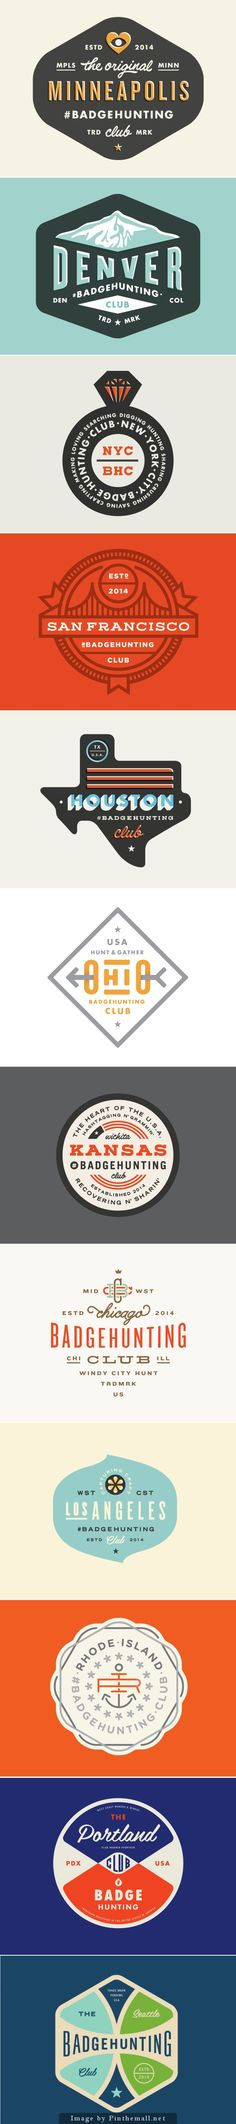 Badgehunting logos by Allan Peters It's cool how he gives some of these an extra vintage touch by nudging the type fill color over a bit to imitate a printing error.